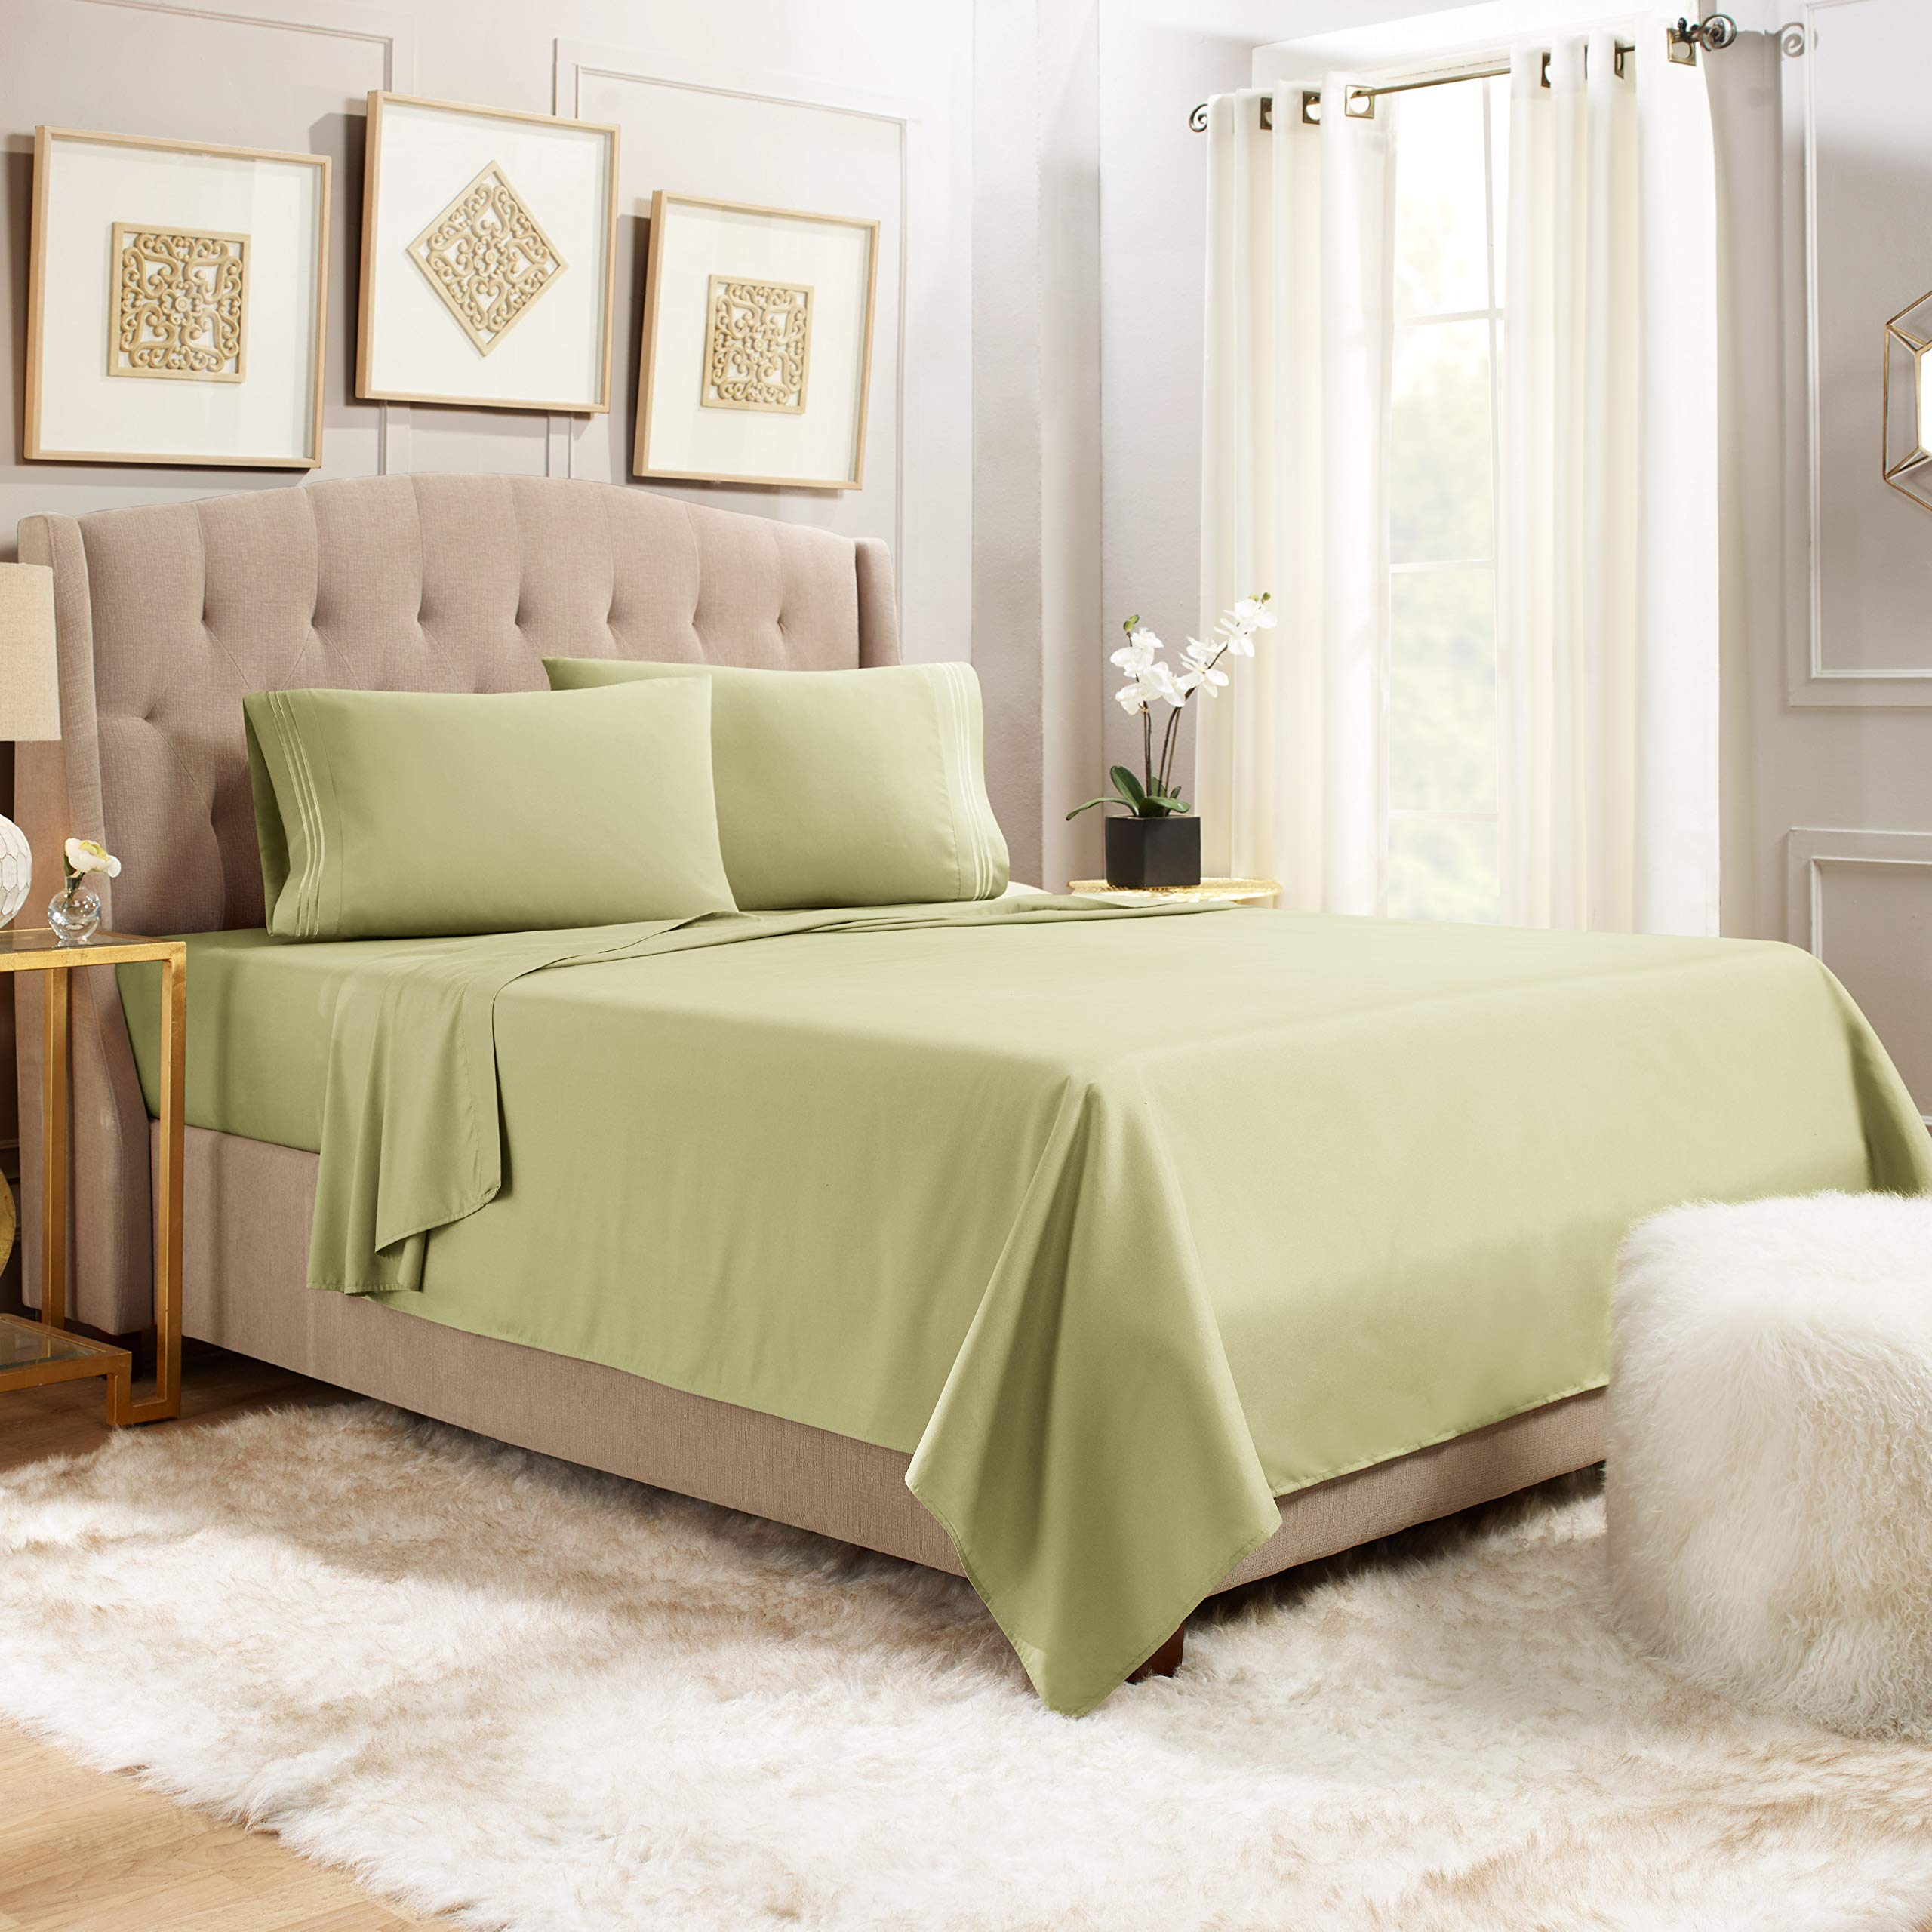 """Empyrean Bedding 14"""" - 16"""" Deep Pocket Fitted Sheet 4 Piece Set - Hotel Luxury Soft Double Brushed Microfiber Top Sheet - Wrinkle Free Fitted Bed Sheet, Flat Sheet and 2 Pillow Cases - Queen, Sage"""